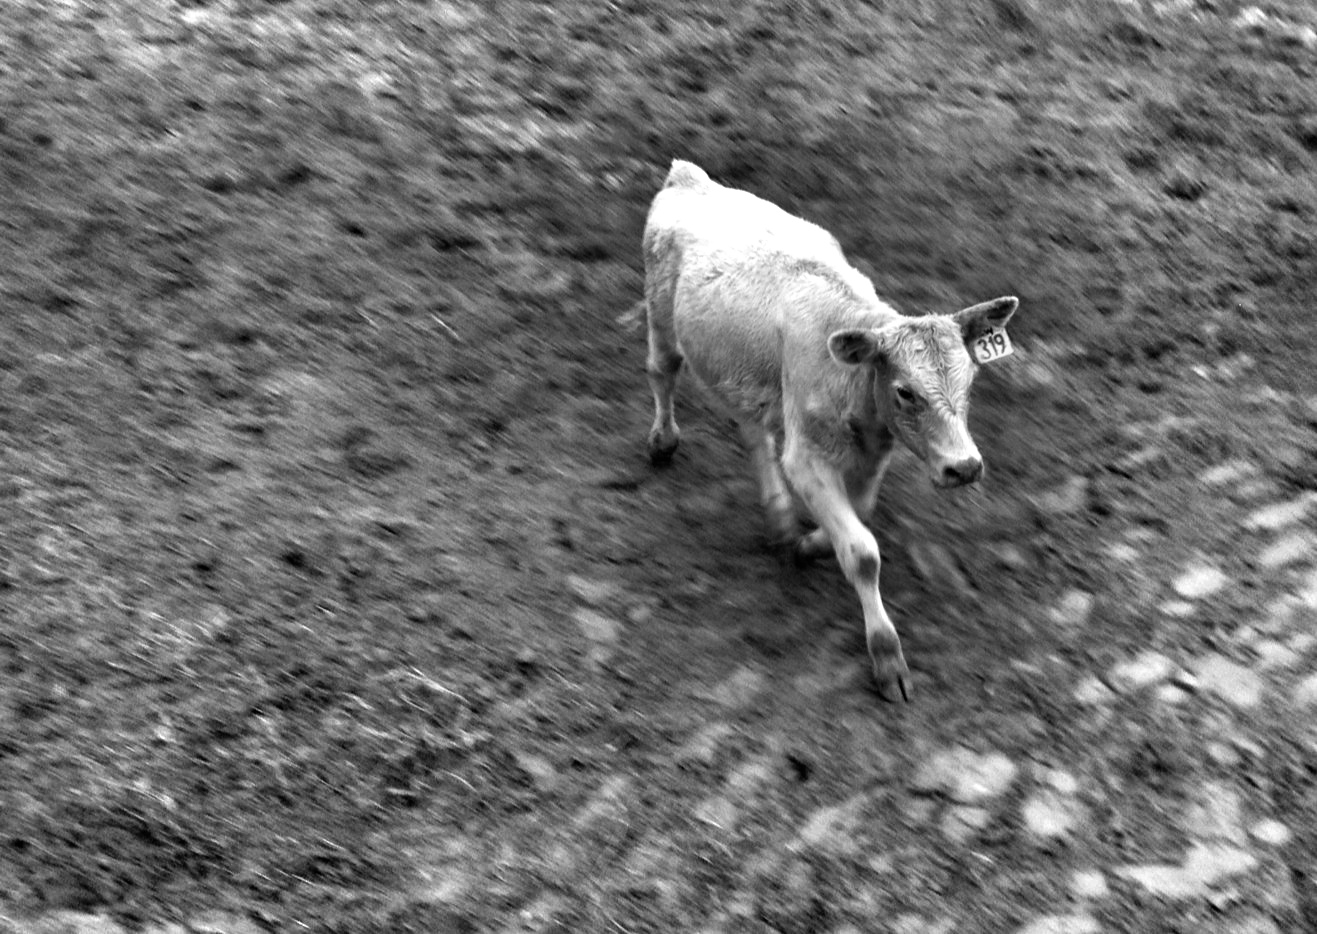 """""""319 is the cow"""". Image by Luke Cummins. 2012 Winner - Secondary Category. Theme 5 - Malting Barley to Mallee Bulls"""